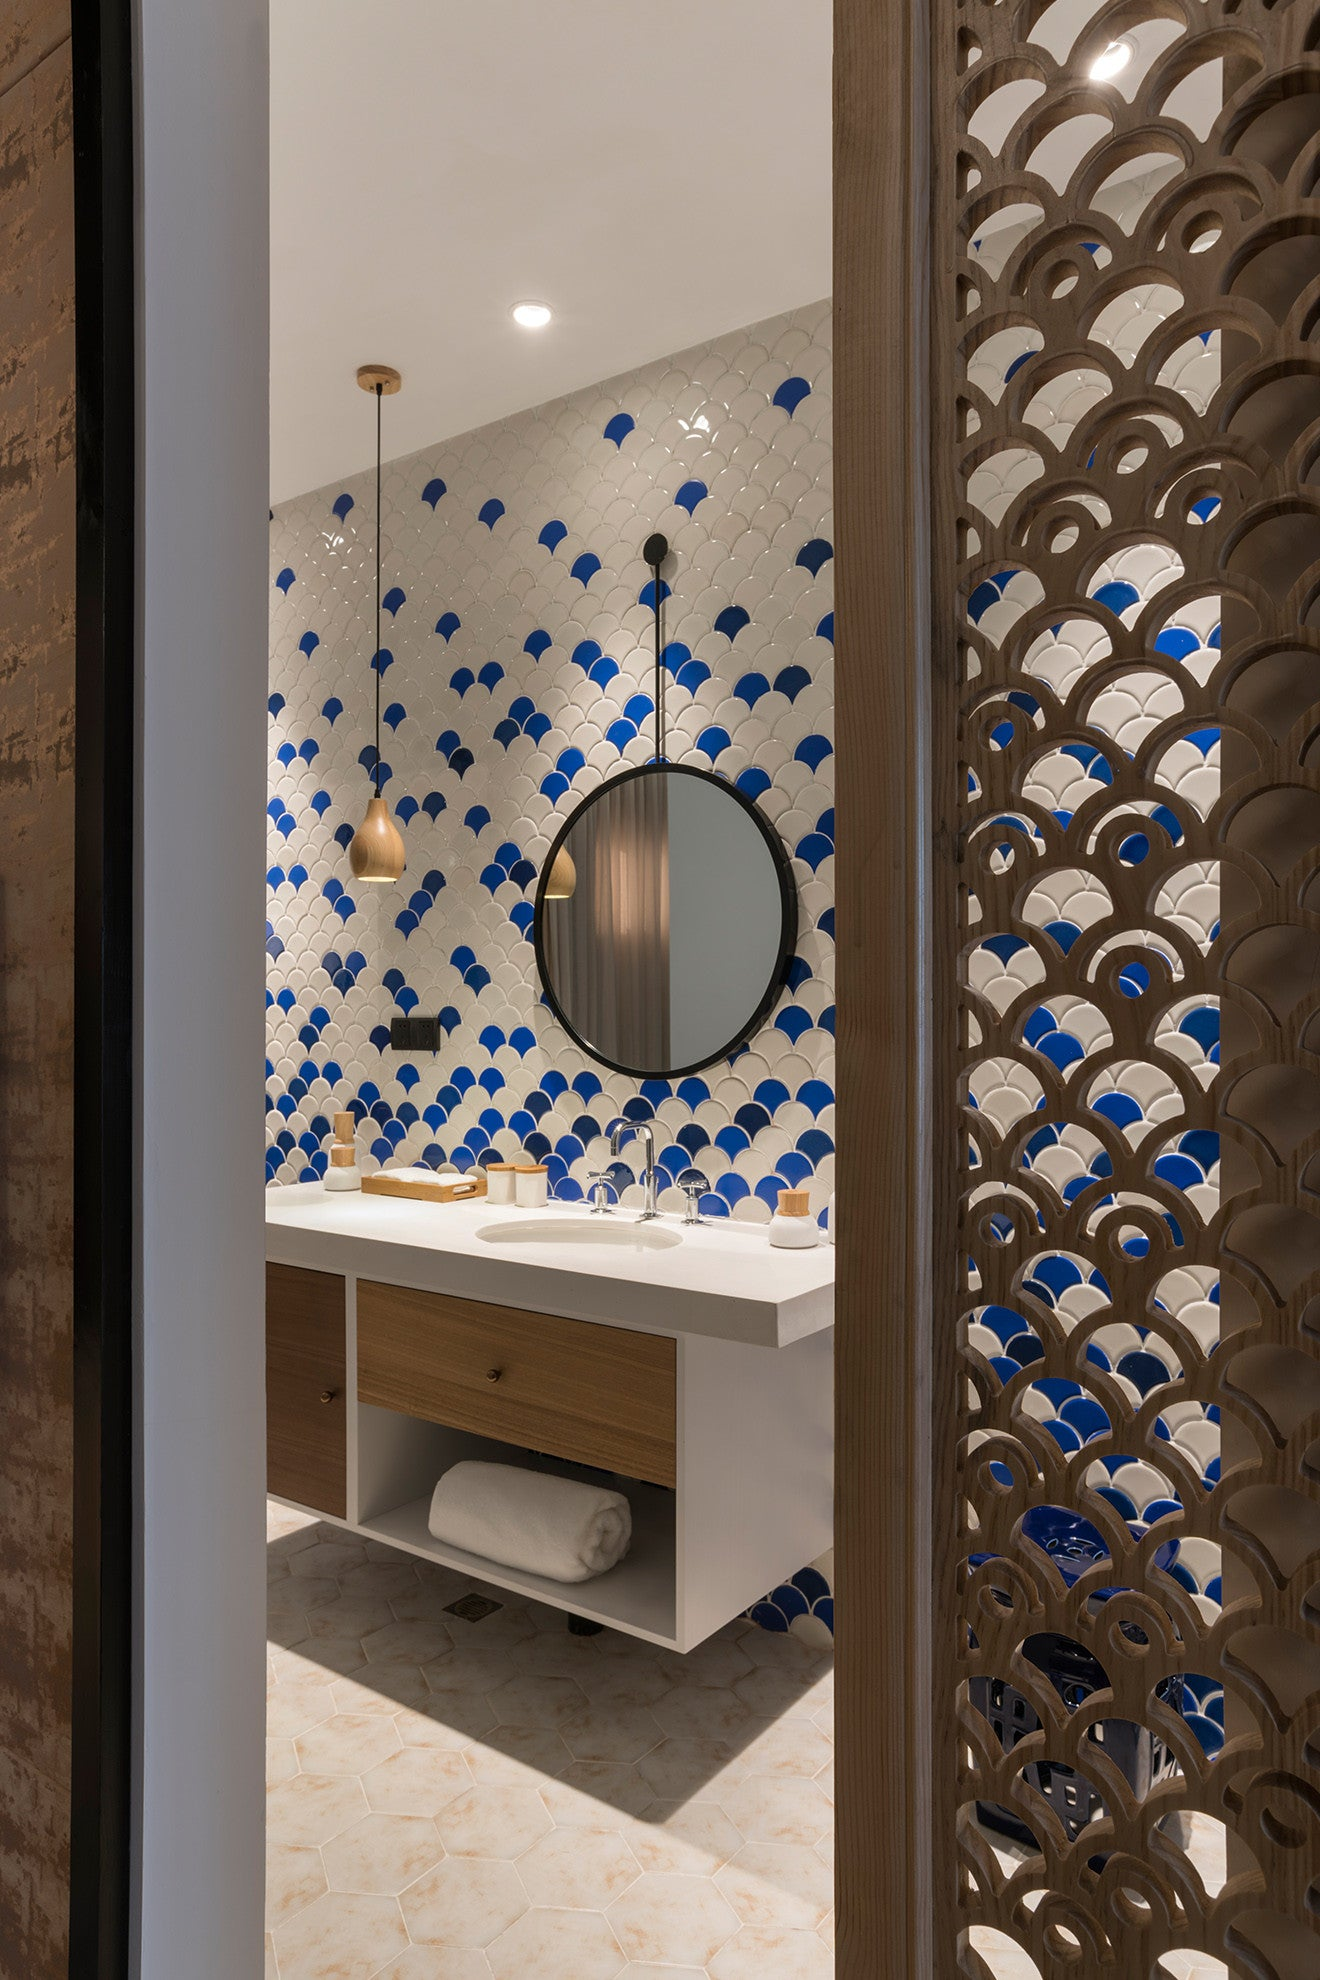 Nanxun Hotel bathroom with blue and white fish scale tiles, designed by Dariel Studio